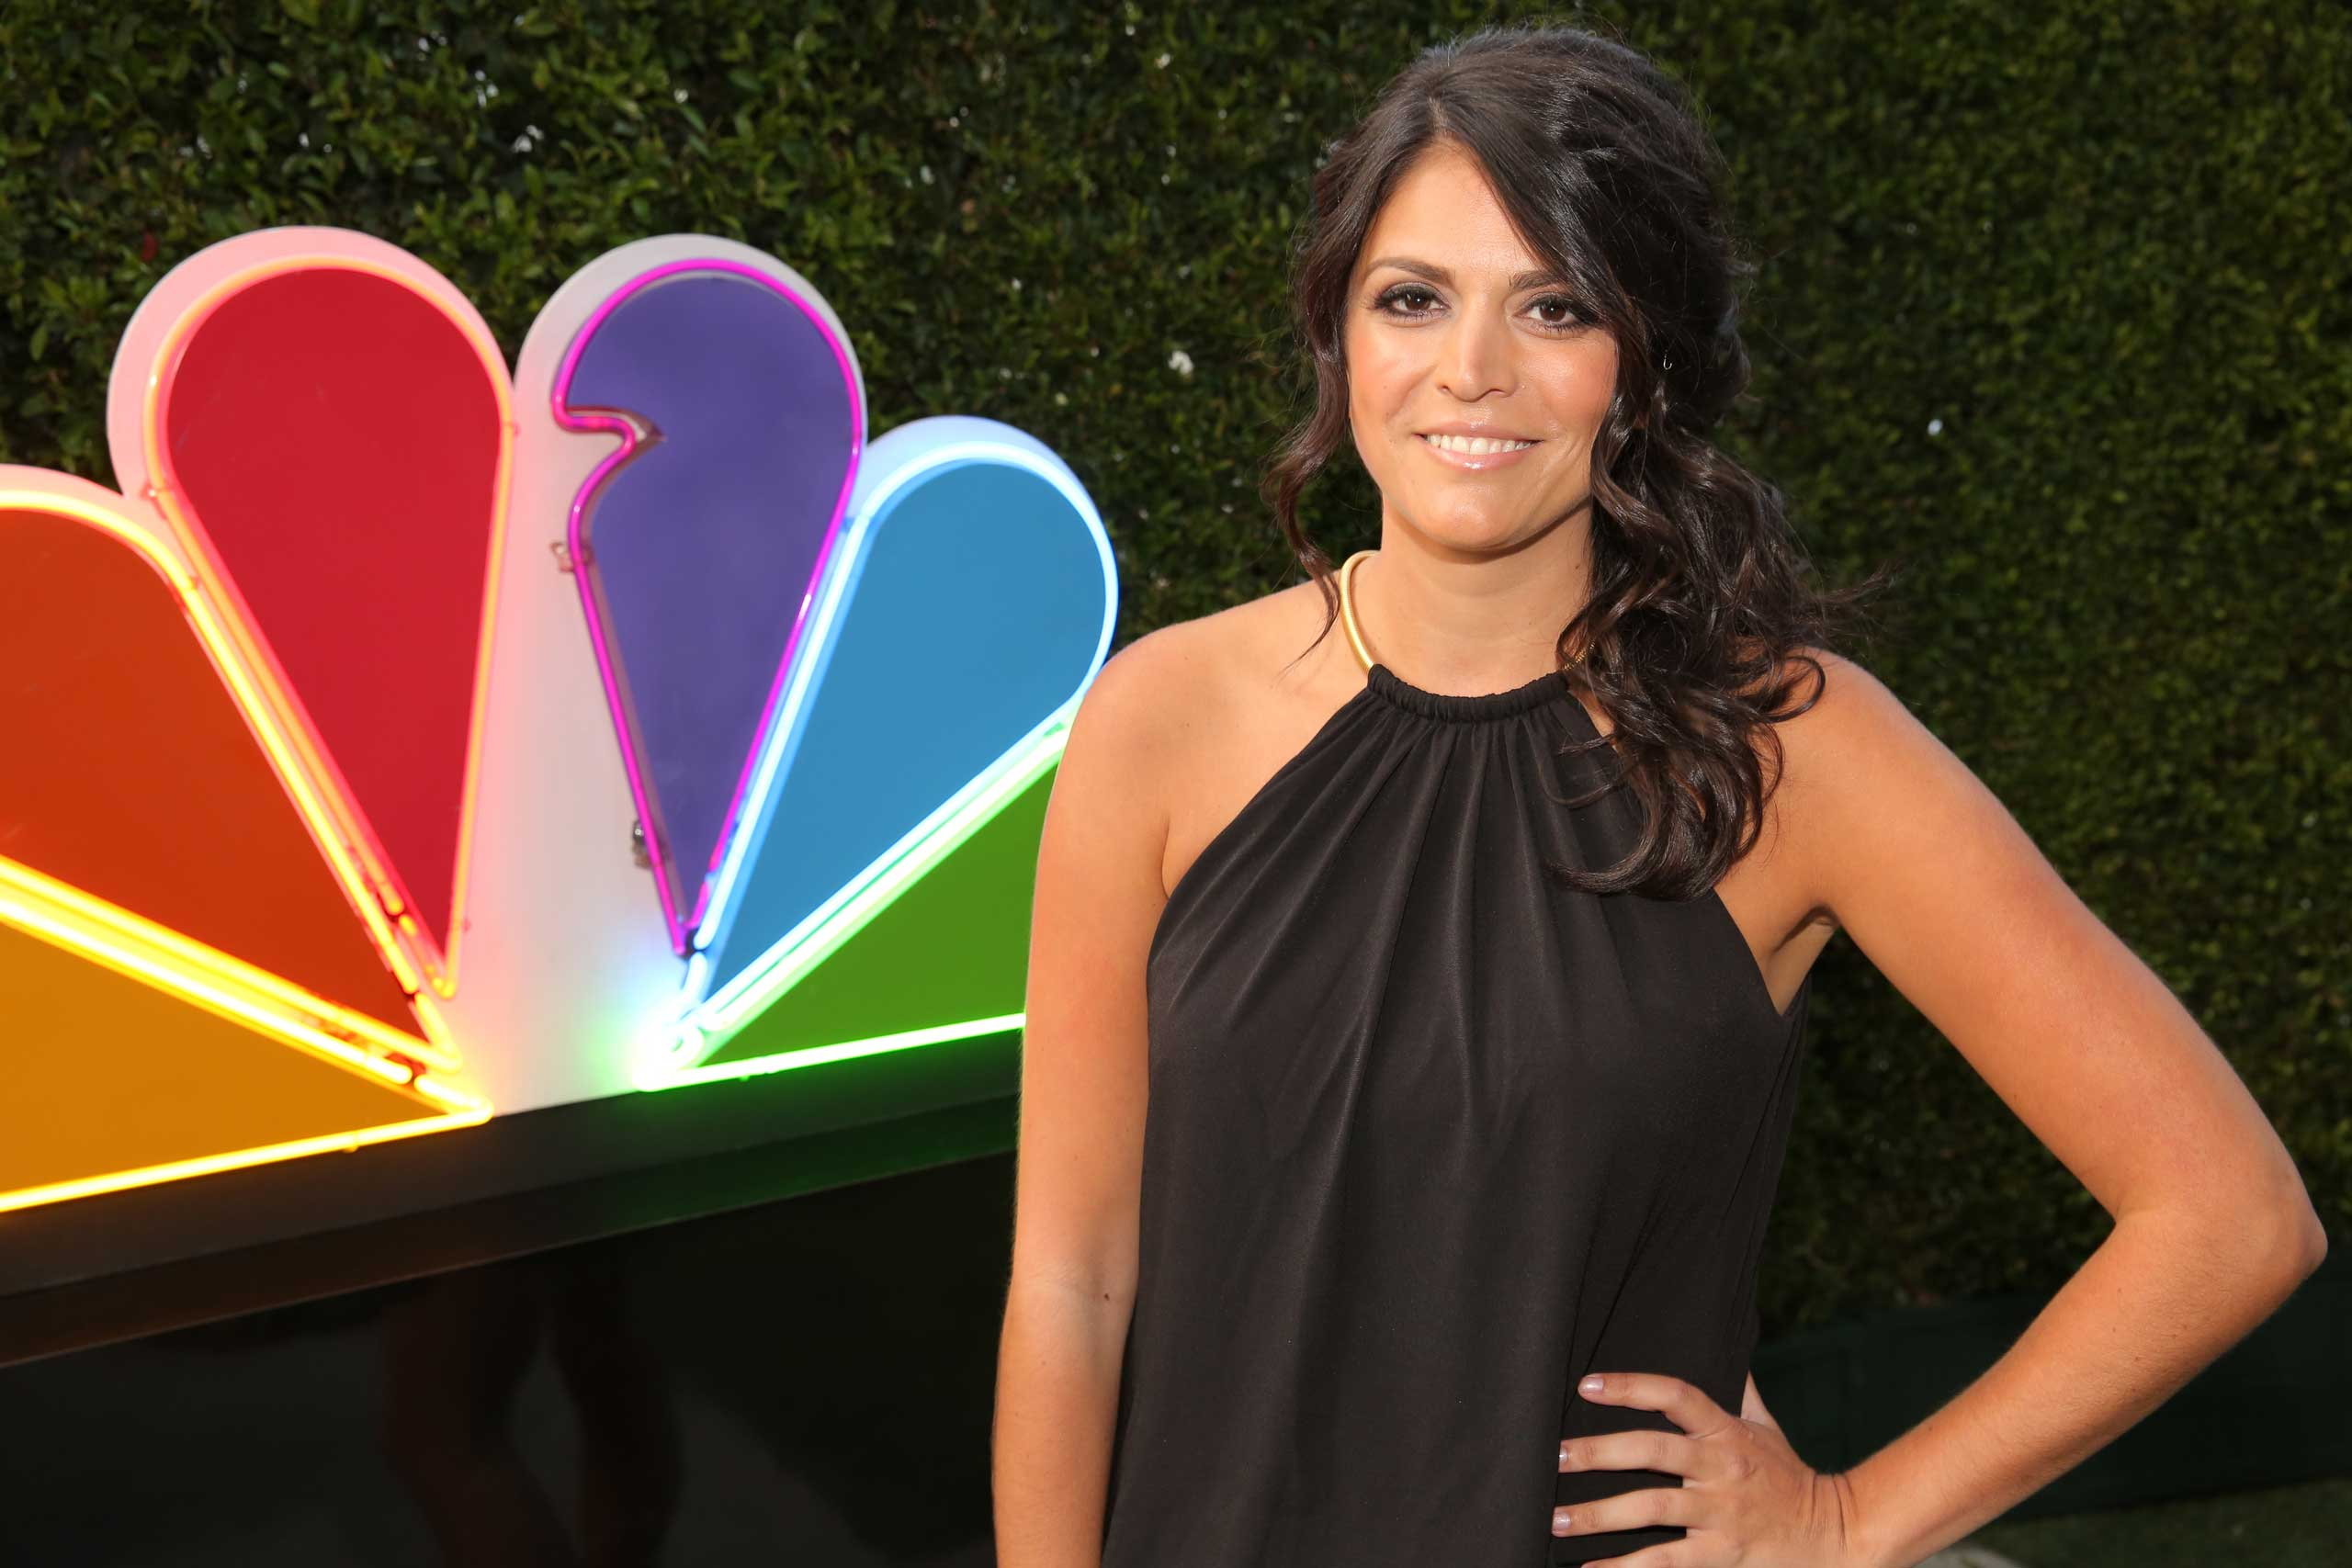 Cecily Strong at Boa Steakhouse, West Hollywood, Aug. 24, 2014.